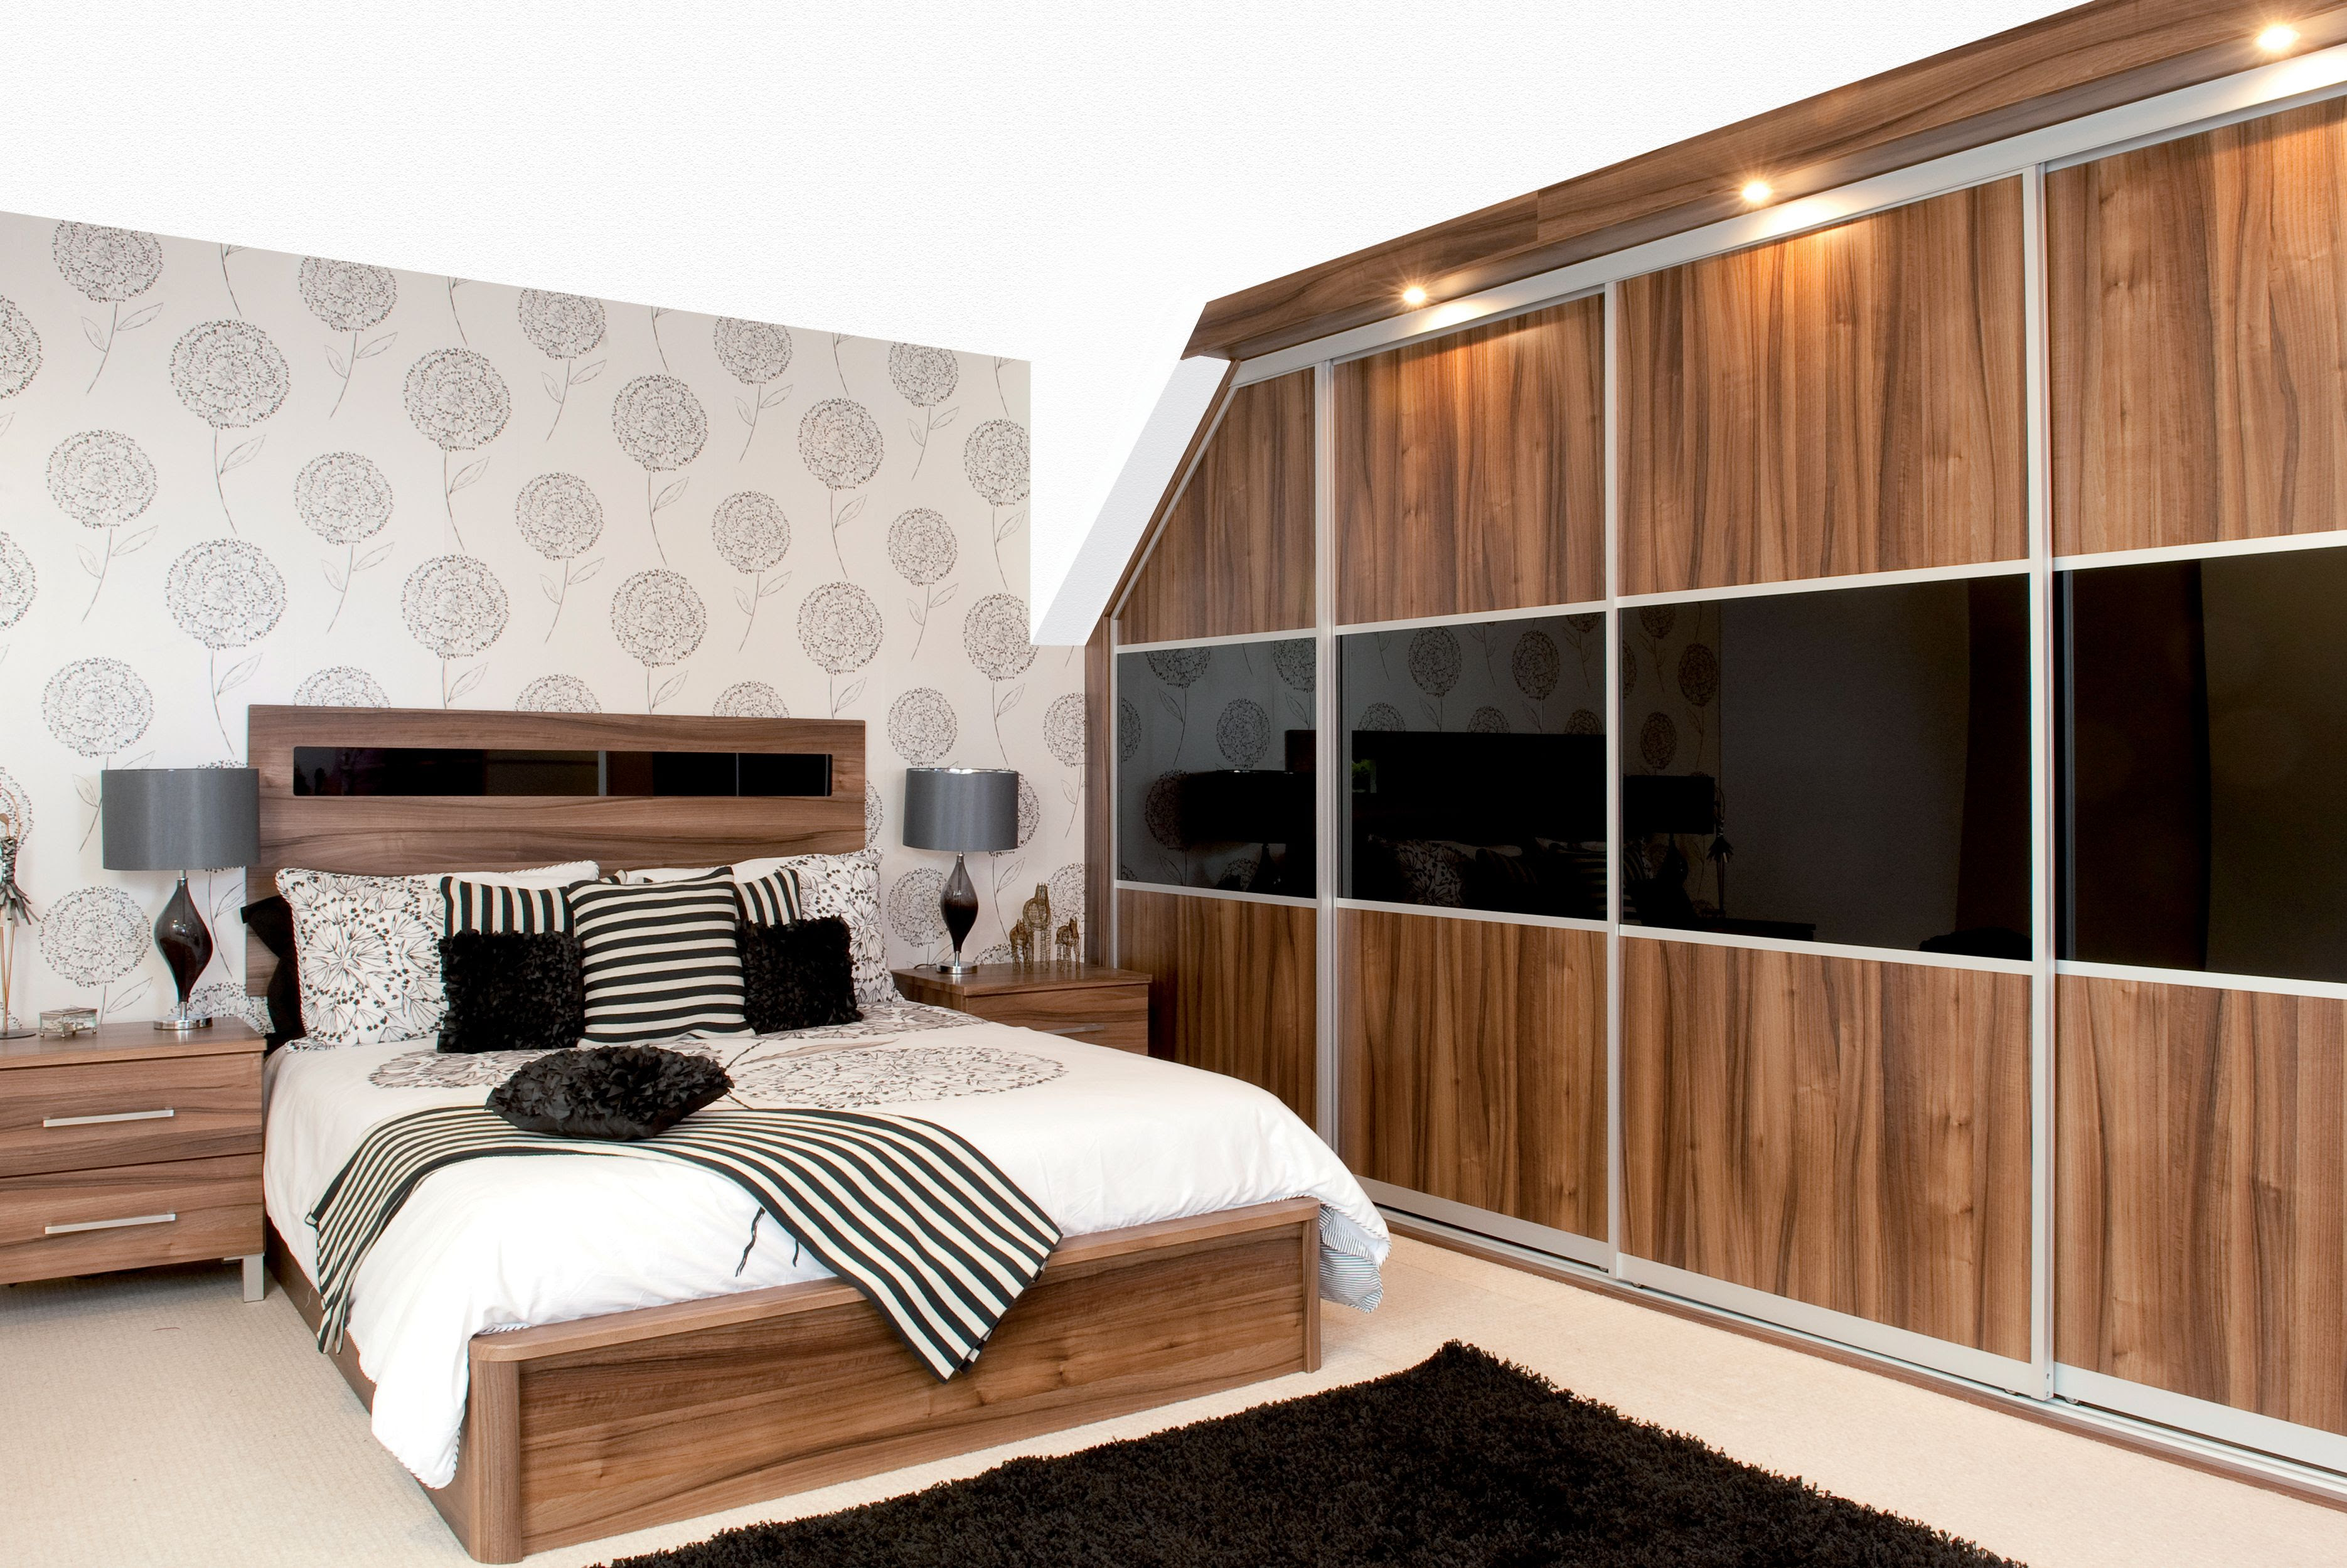 Bedroom storage buying guide | Help & Ideas | DIY at B&Q